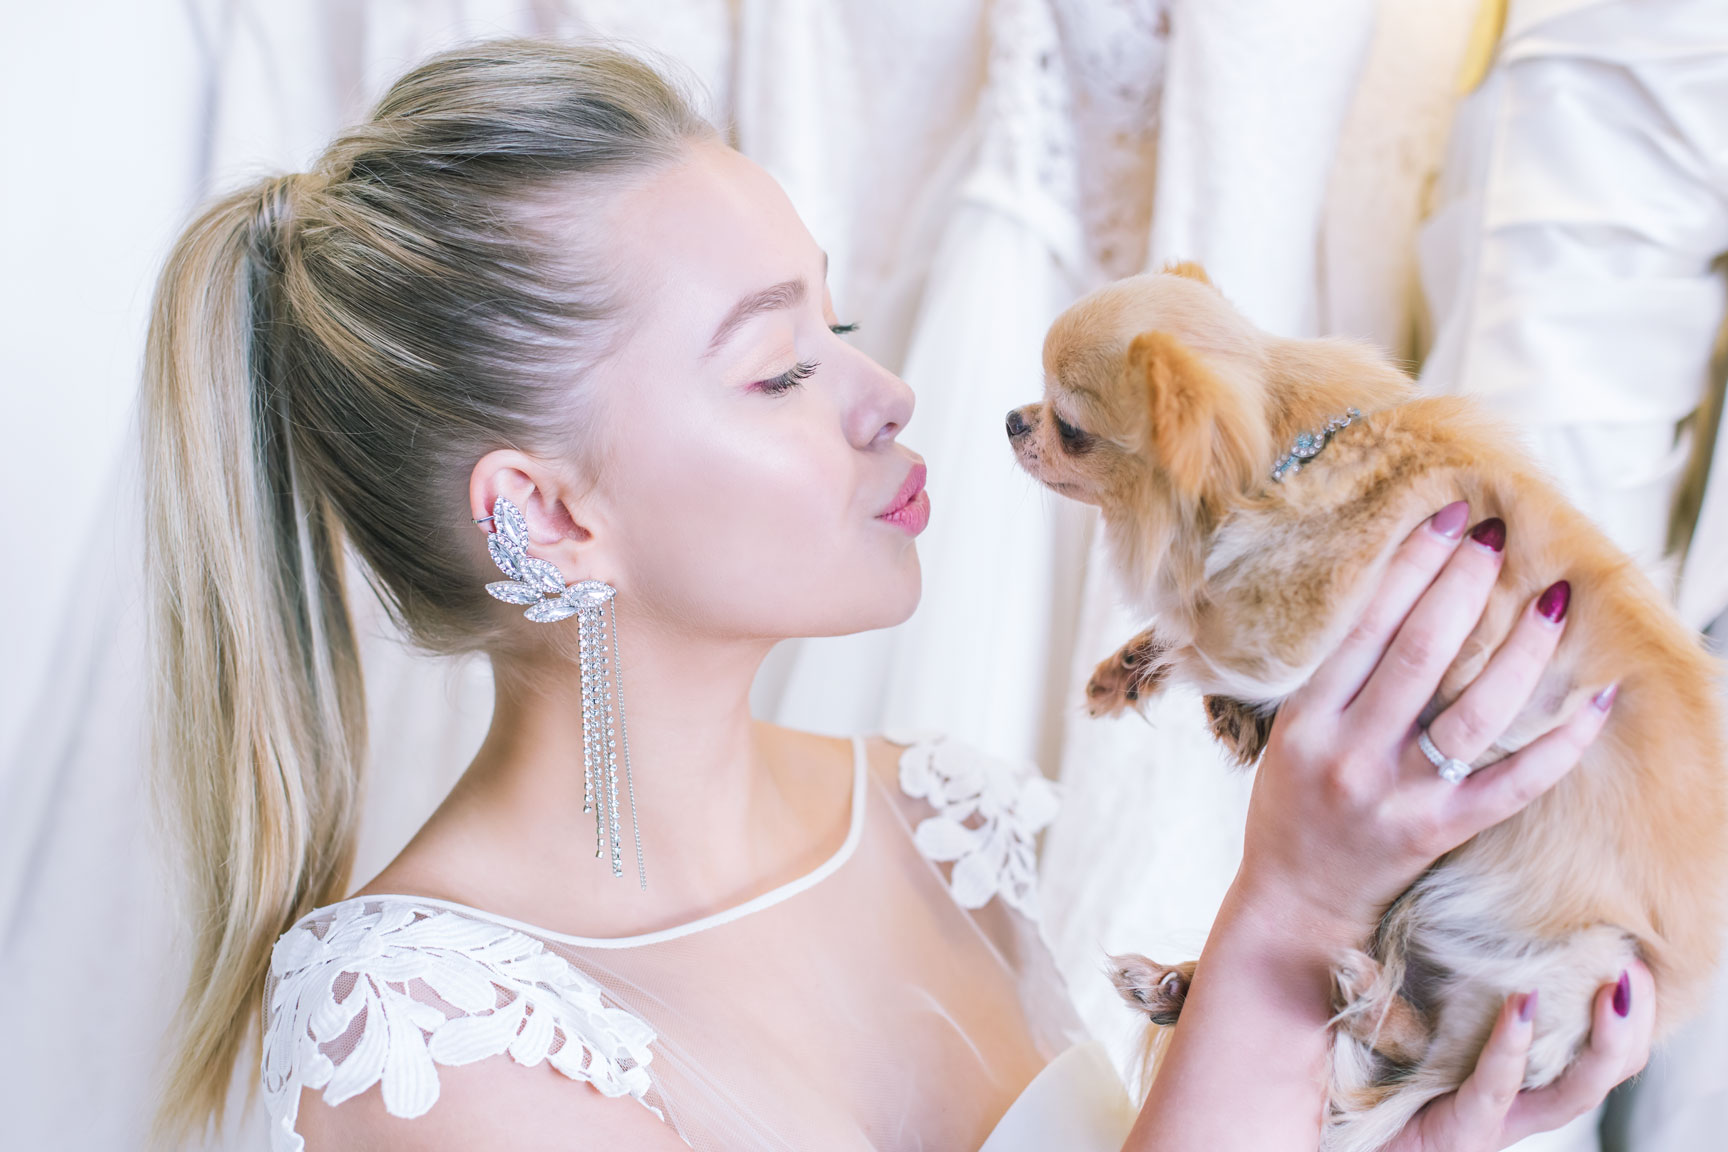 May & Grace Bridal - 3 alternative bridal looks - bride dog